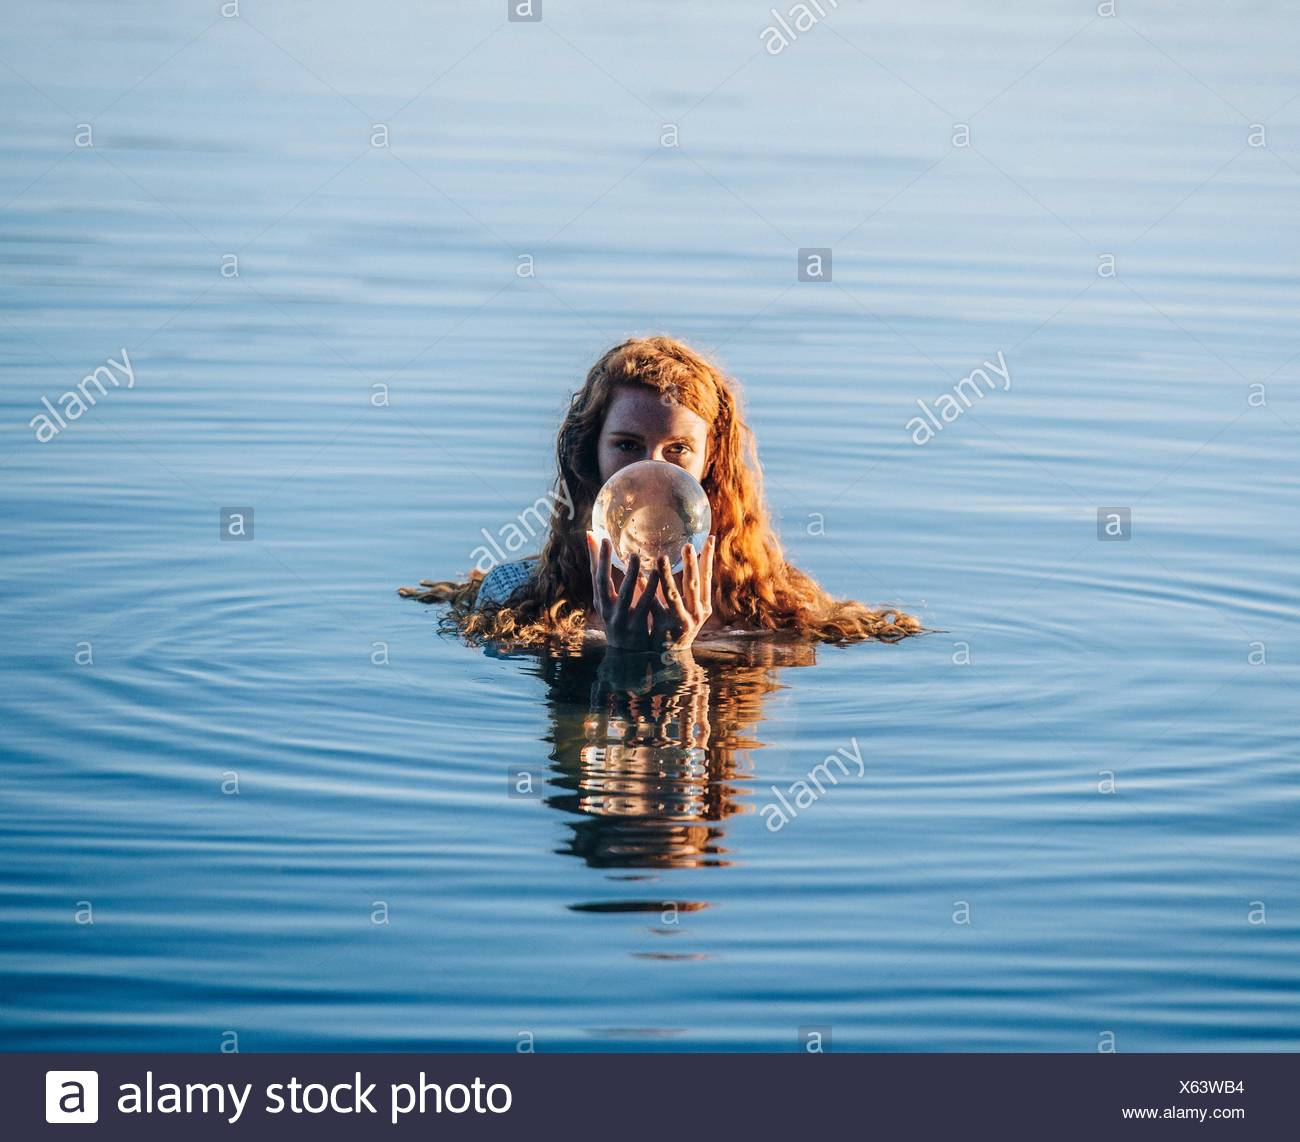 Head and shoulders of young woman with long red hair in lake holding crystal ball - Stock Image